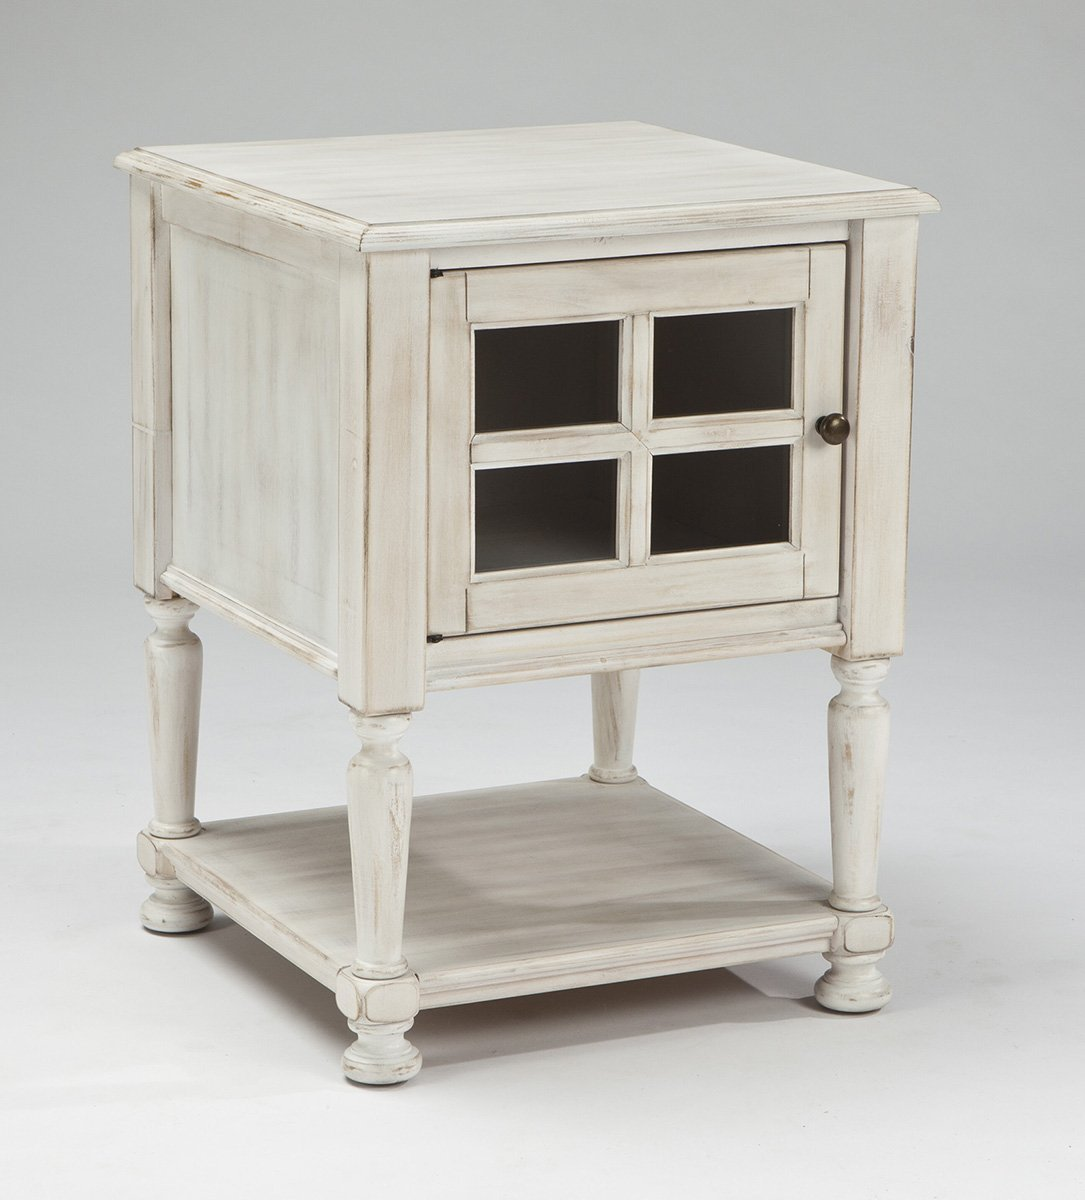 distressed white end tables decor ideasdecor ideas inch high round accent table decorating cabinet drawers nursery nightstand drawer with mirror two bulb lamp small centerpiece